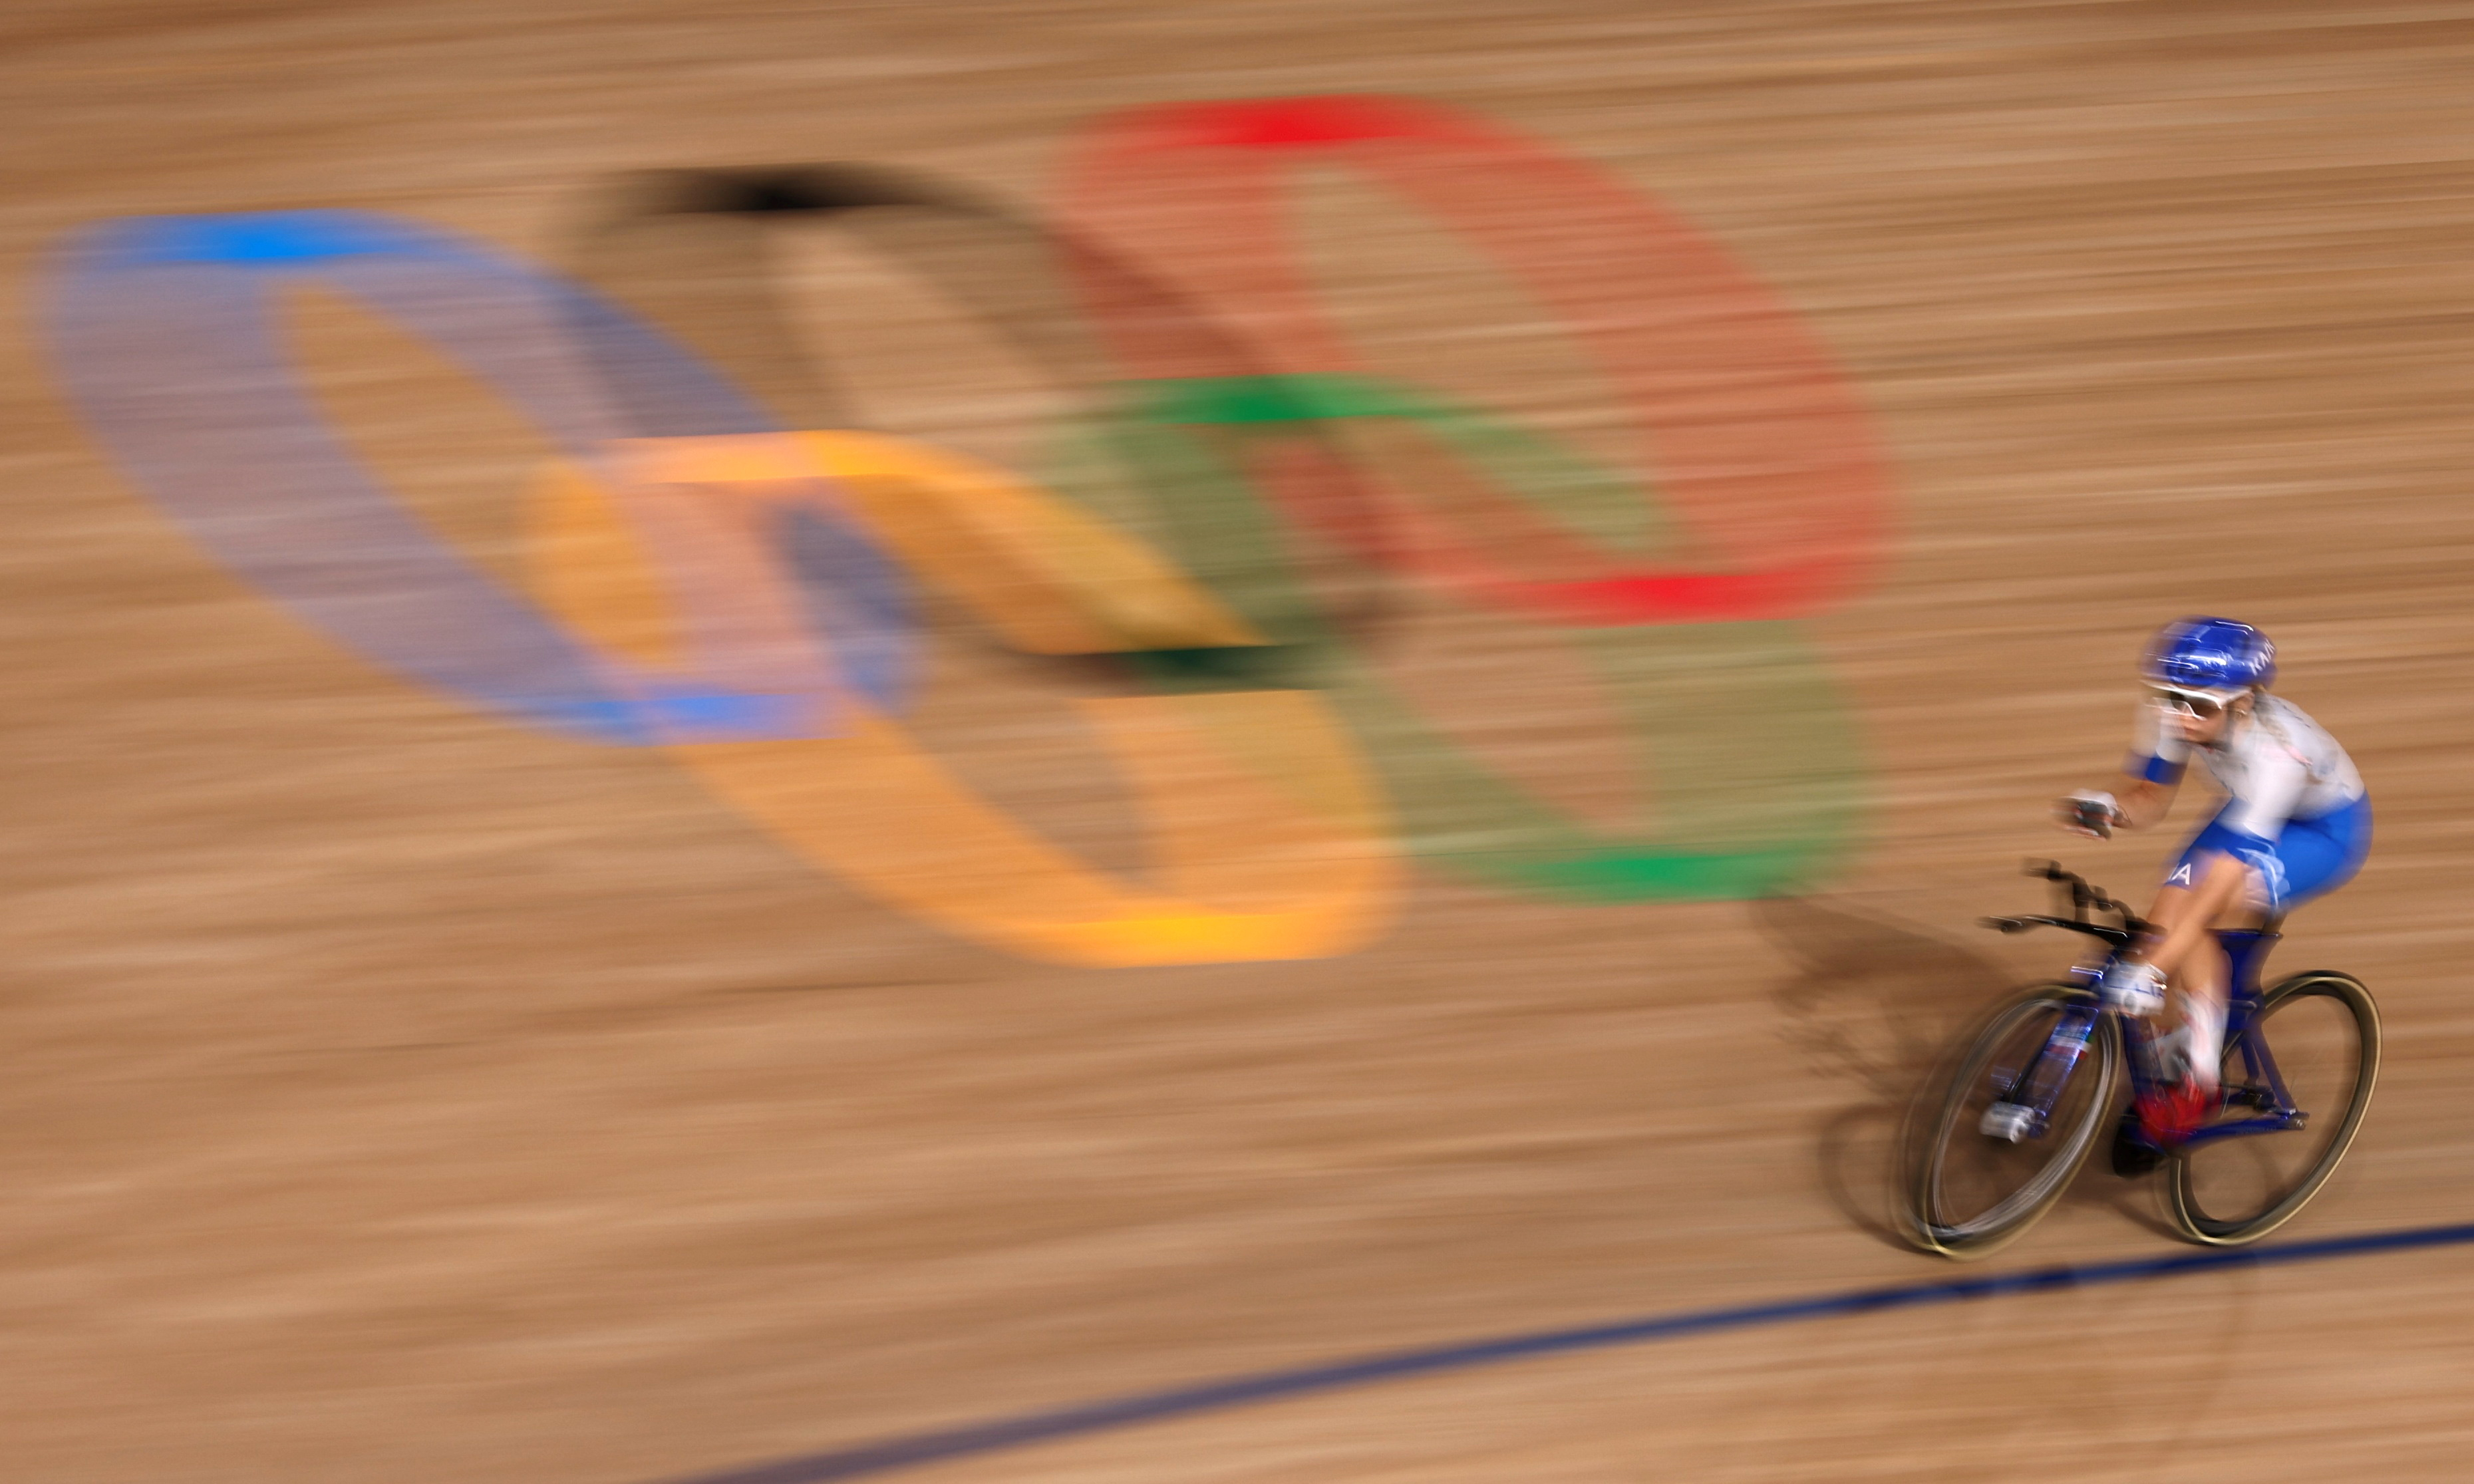 Tokyo 2020 Olympics - Cycling - Track - Women's Team Sprint - Qualification - Izu Velodrome, Shizuoka, Japan - August 2, 2021. A cyclist warms up before the event. REUTERS/Christian Hartmann